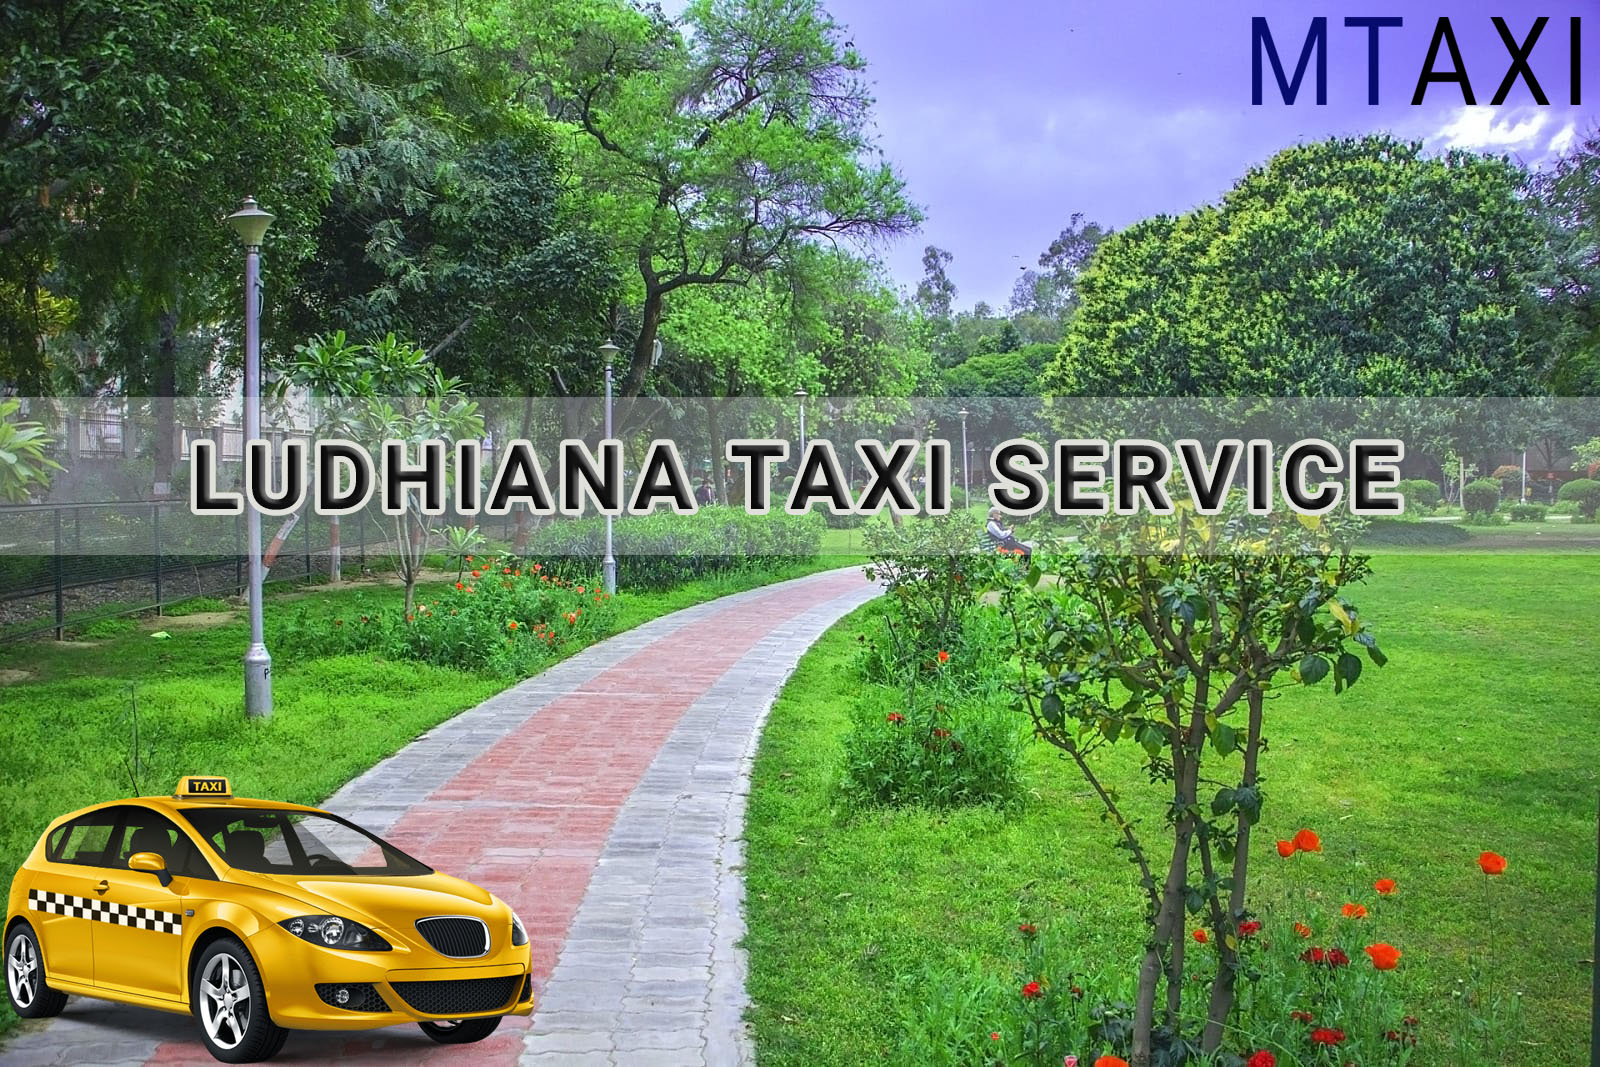 chandigarh to ludhiana taxi one way innova crysta etios cabs in chandigarh